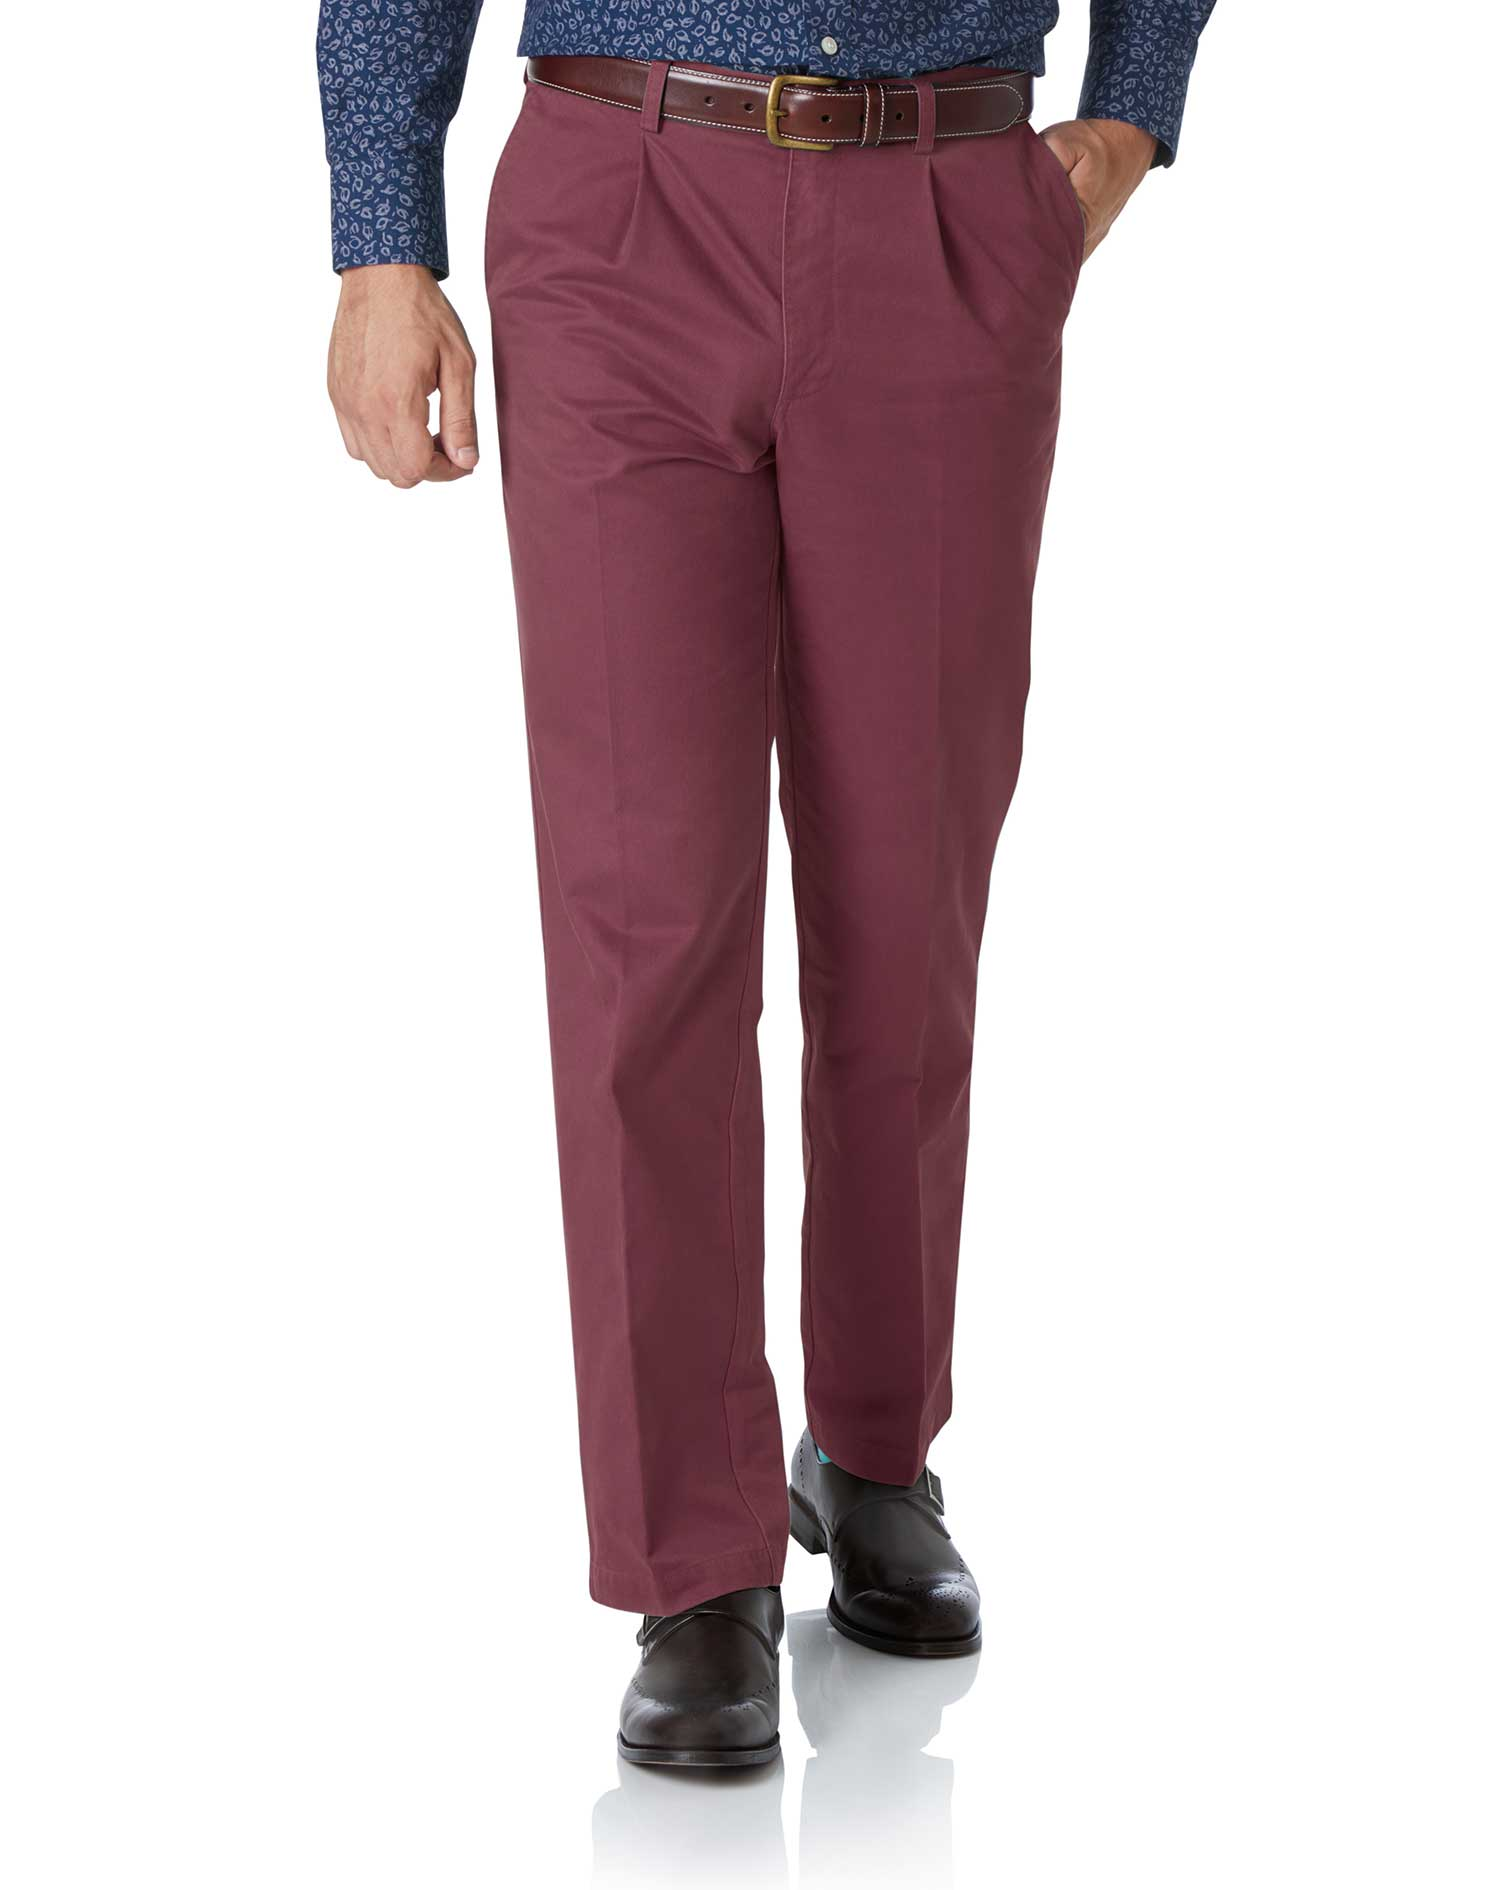 Dark Pink Classic Fit Single Pleat Washed Cotton Chino Trousers Size W36 L34 by Charles Tyrwhitt